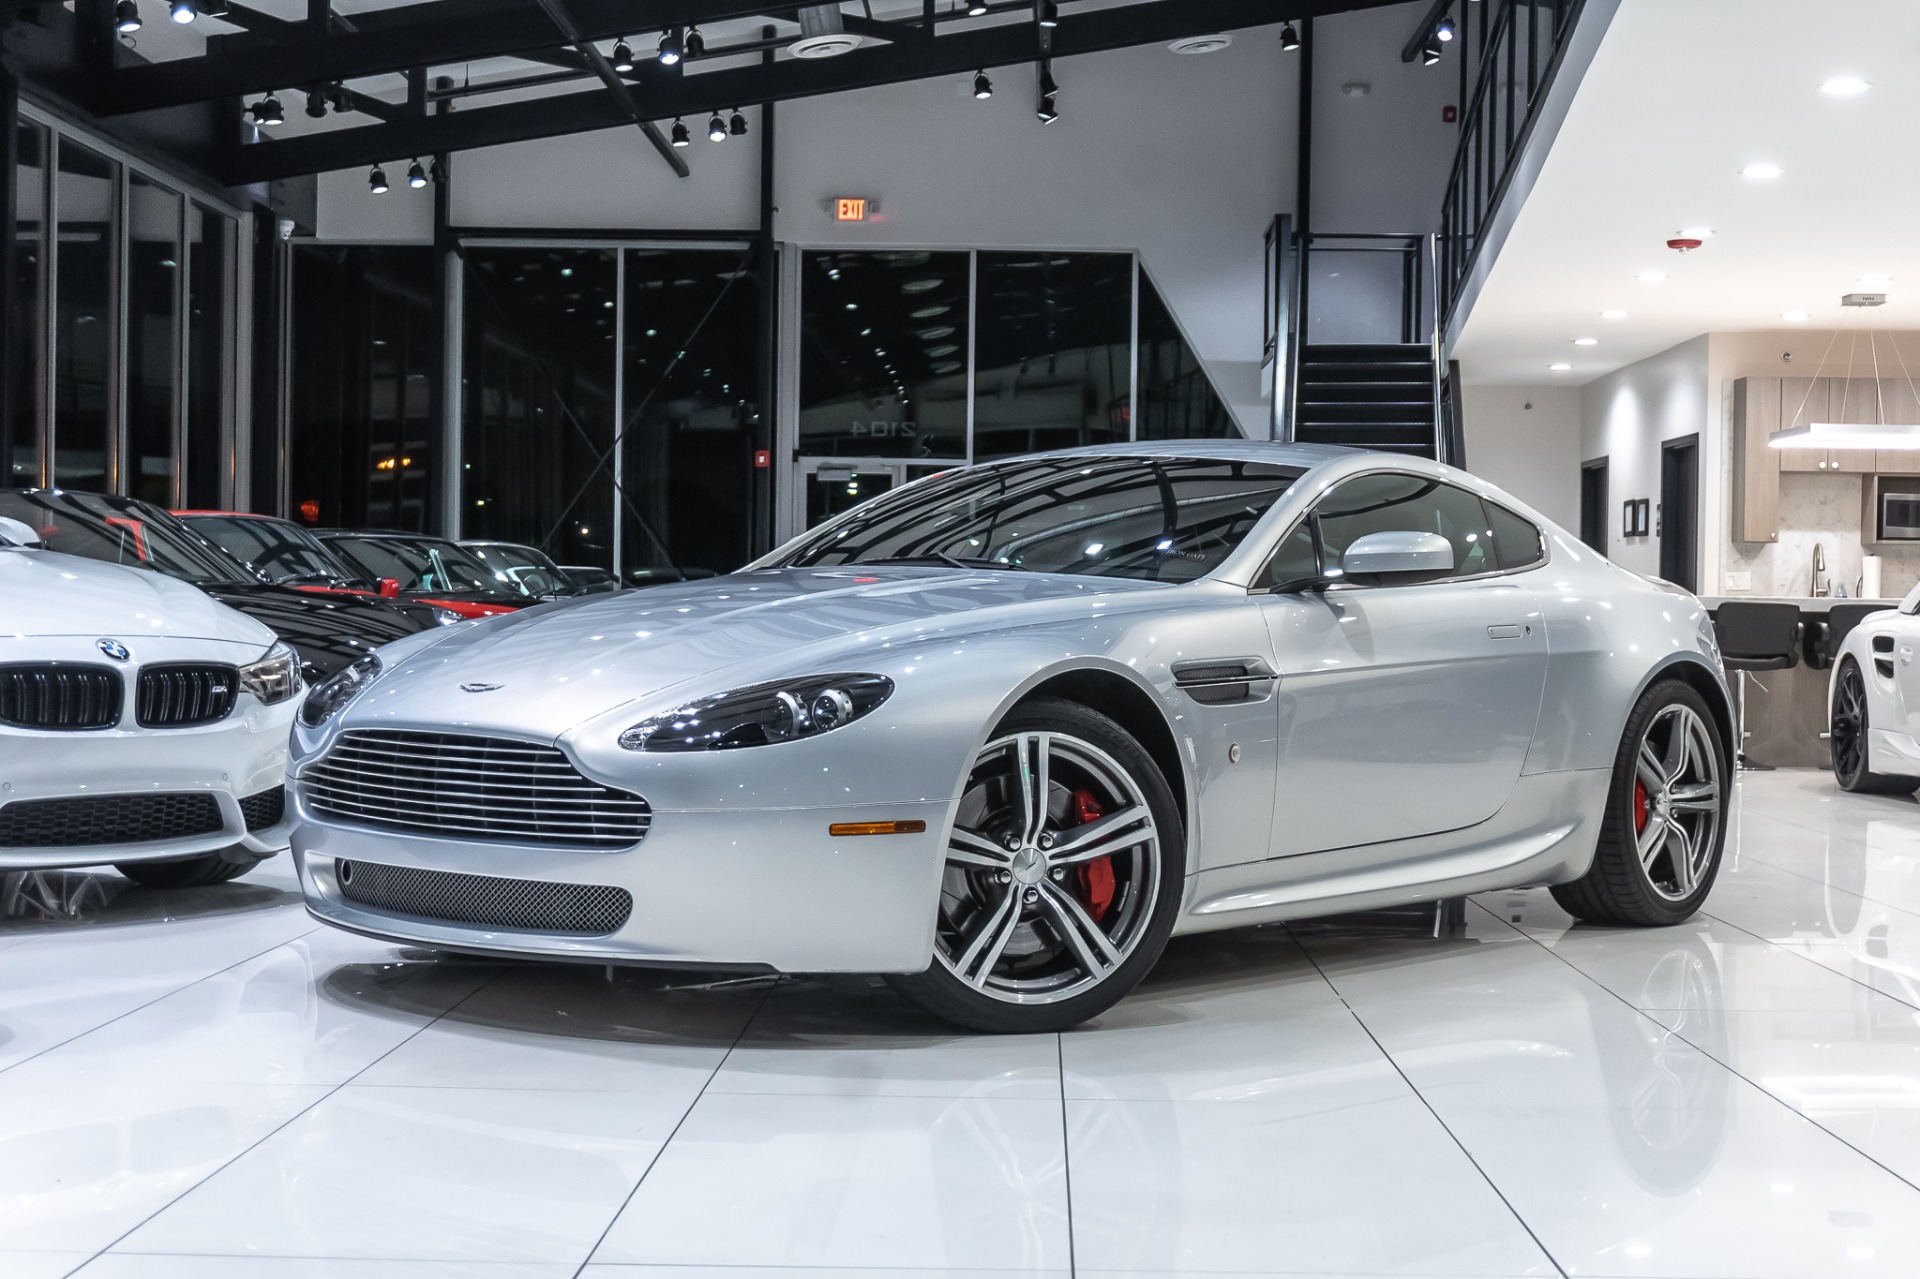 Used 2008 Aston Martin V8 Vantage Coupe N400 6 Speed Rare 211 Of 240 For Sale 55 800 Chicago Motor Cars Stock 17282